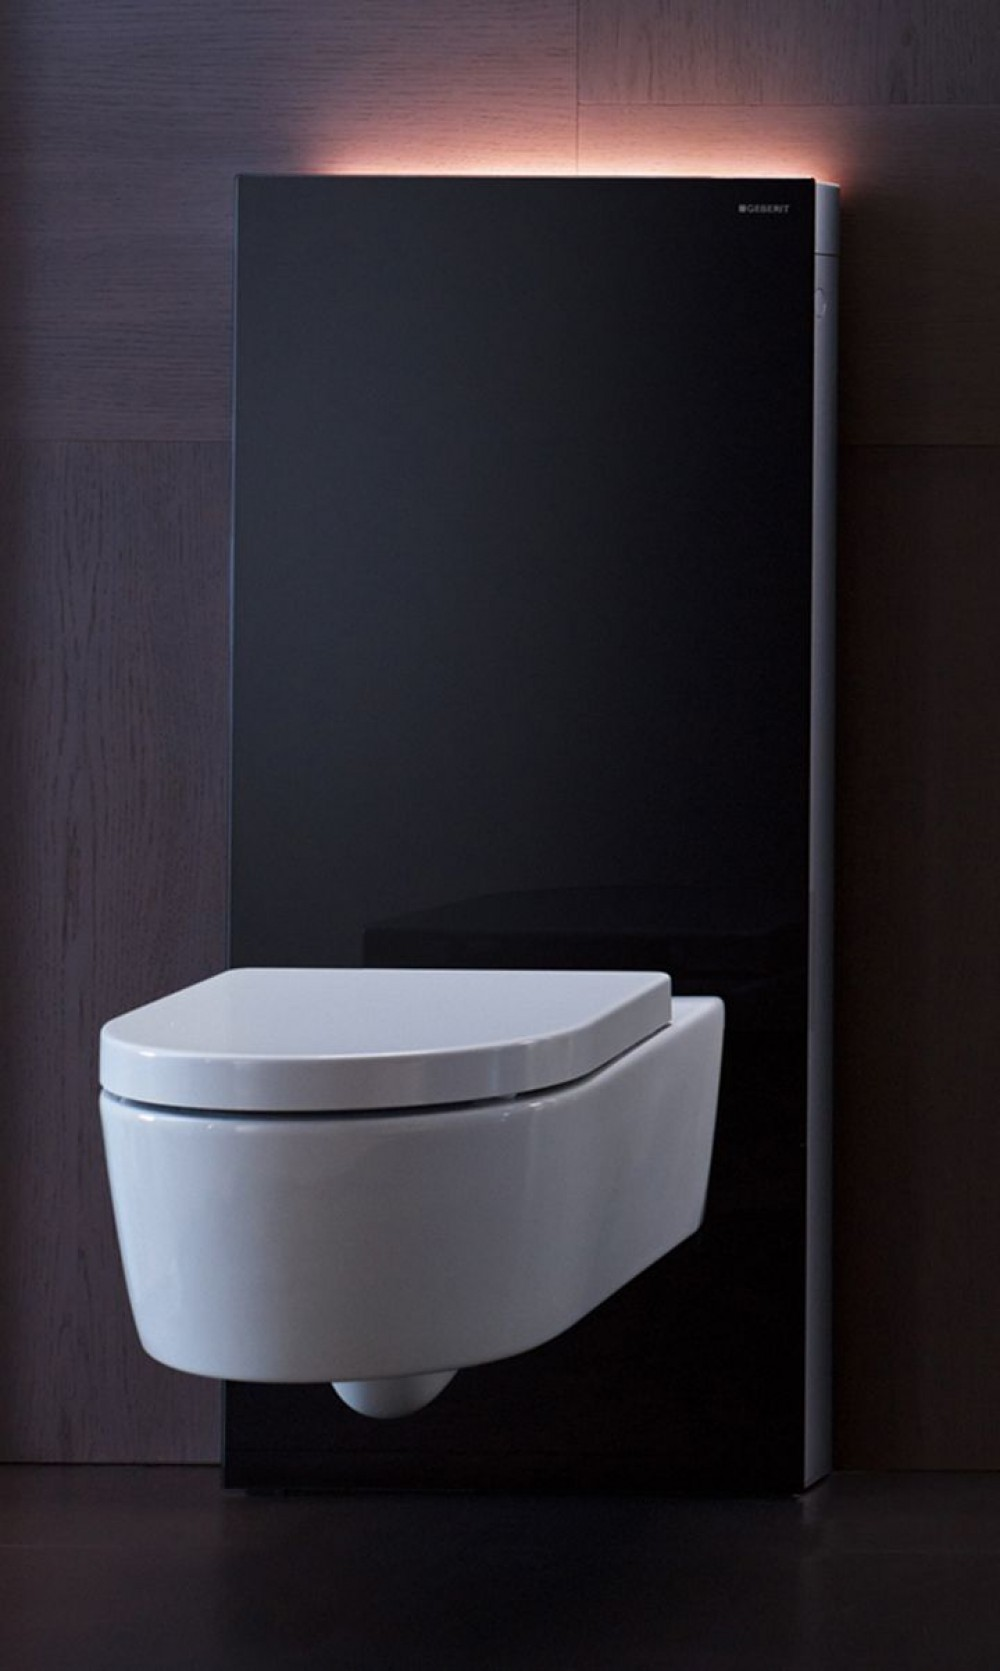 geberit monolith plus sanitary module for wall mounted toilet h 101 cm black 131222sj1 tooaleta. Black Bedroom Furniture Sets. Home Design Ideas